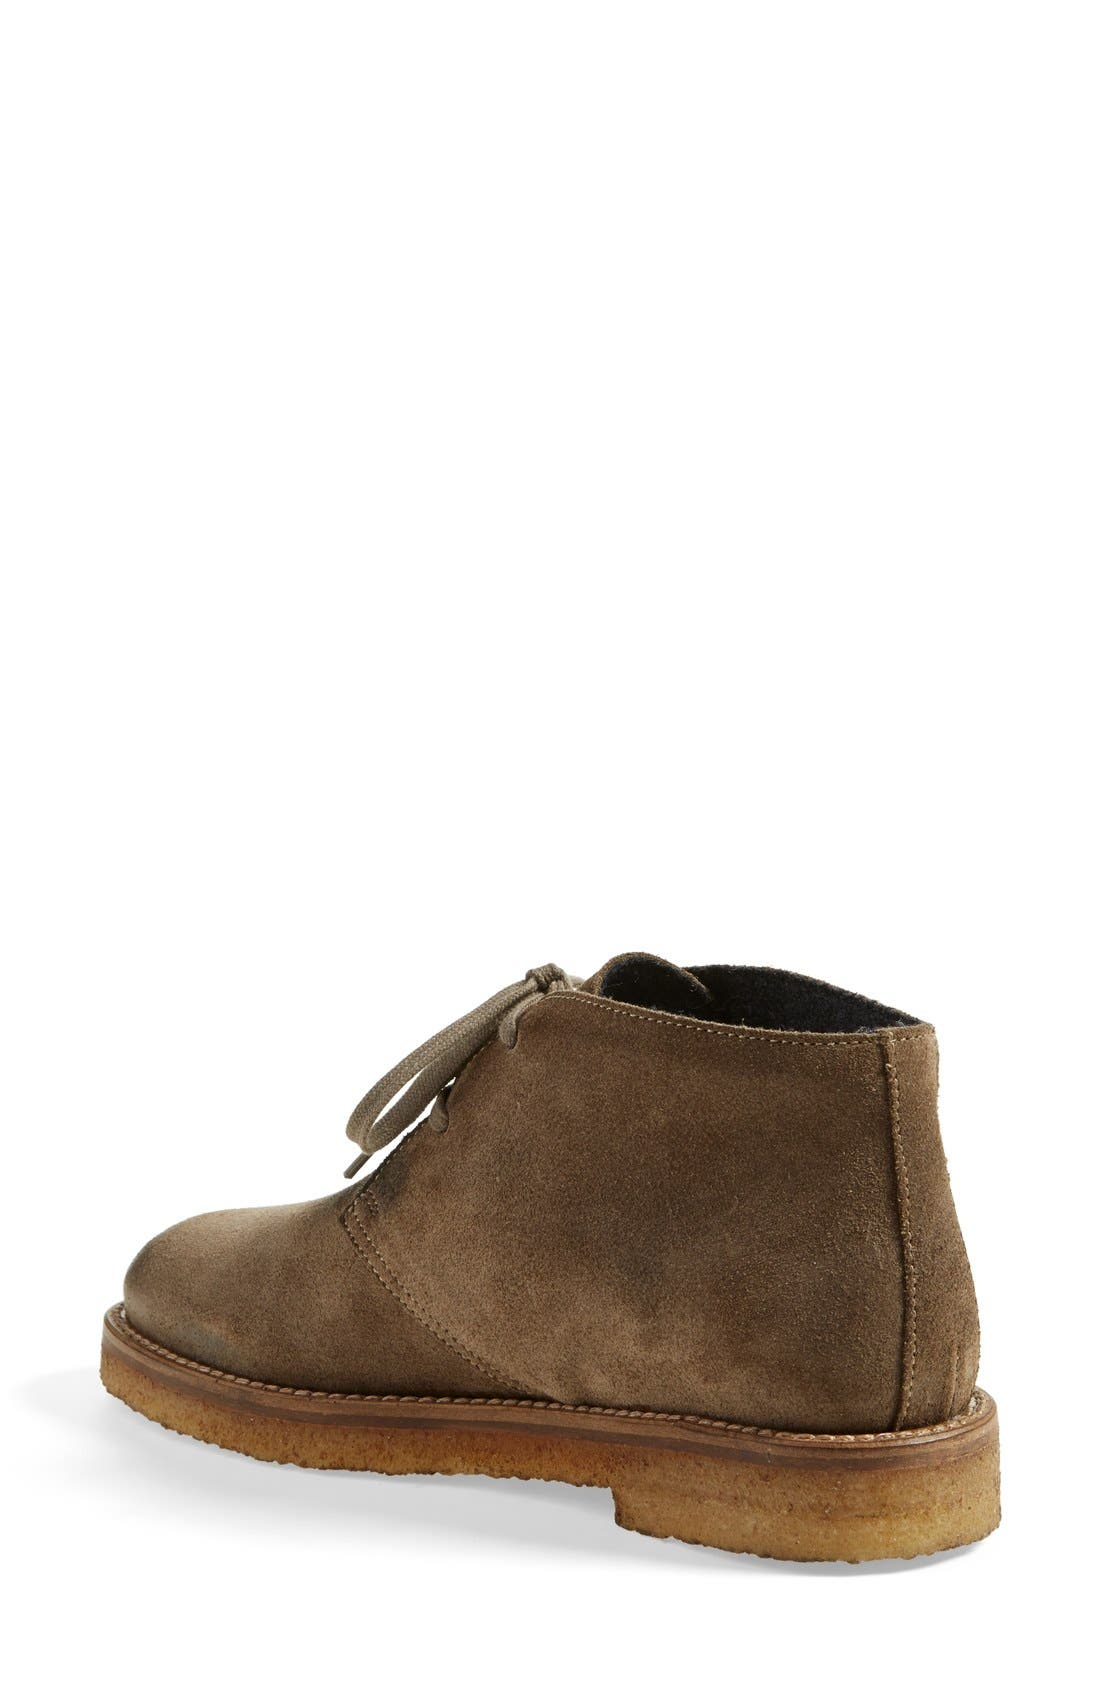 Alternate Image 2  - Vince 'Clay' Chukka Boot (Women)